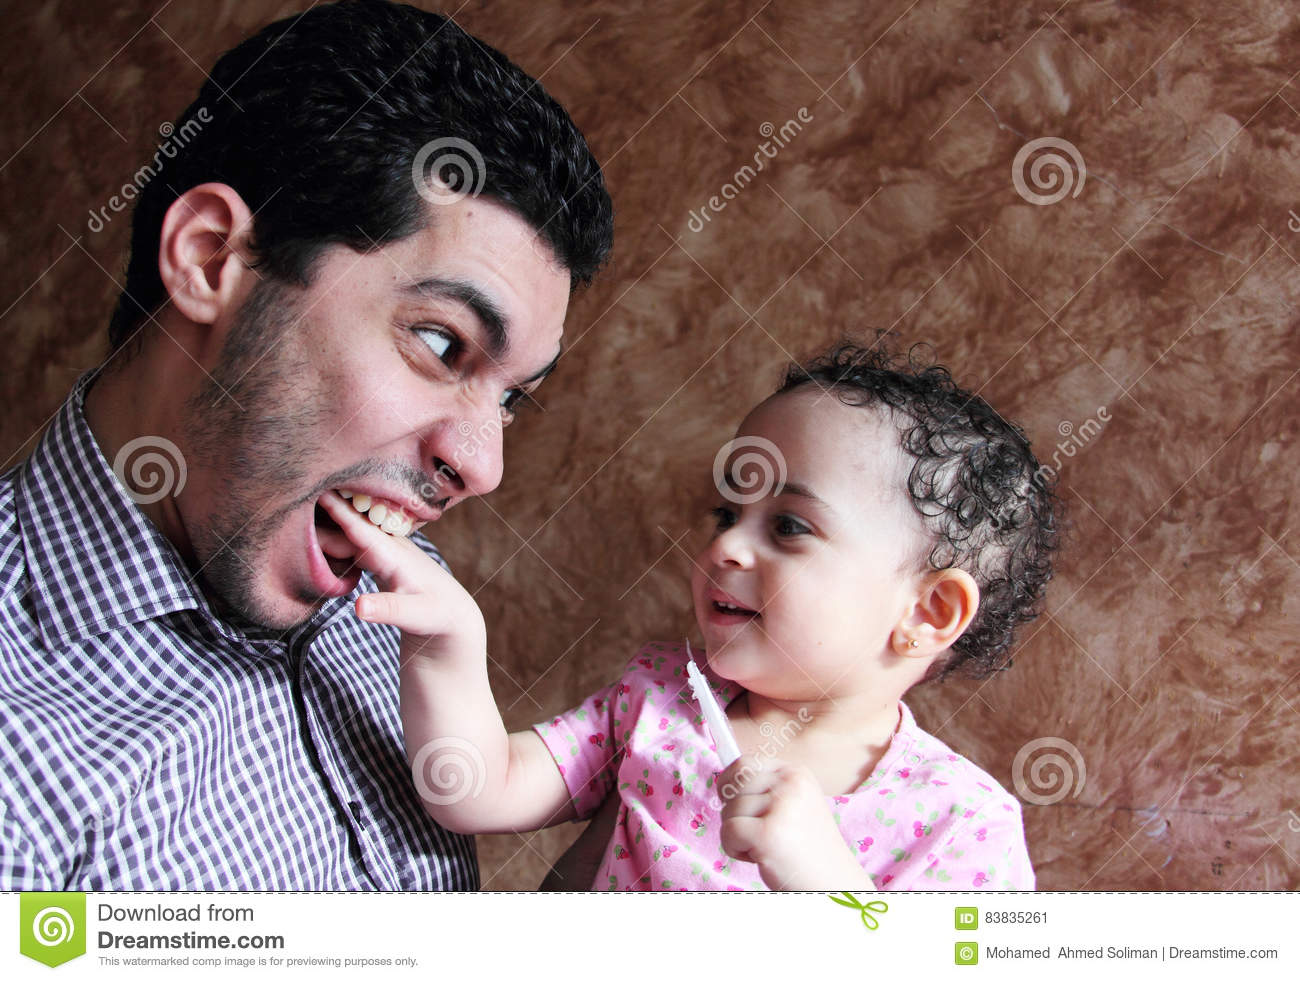 Arab egyptian baby girl playing with her father